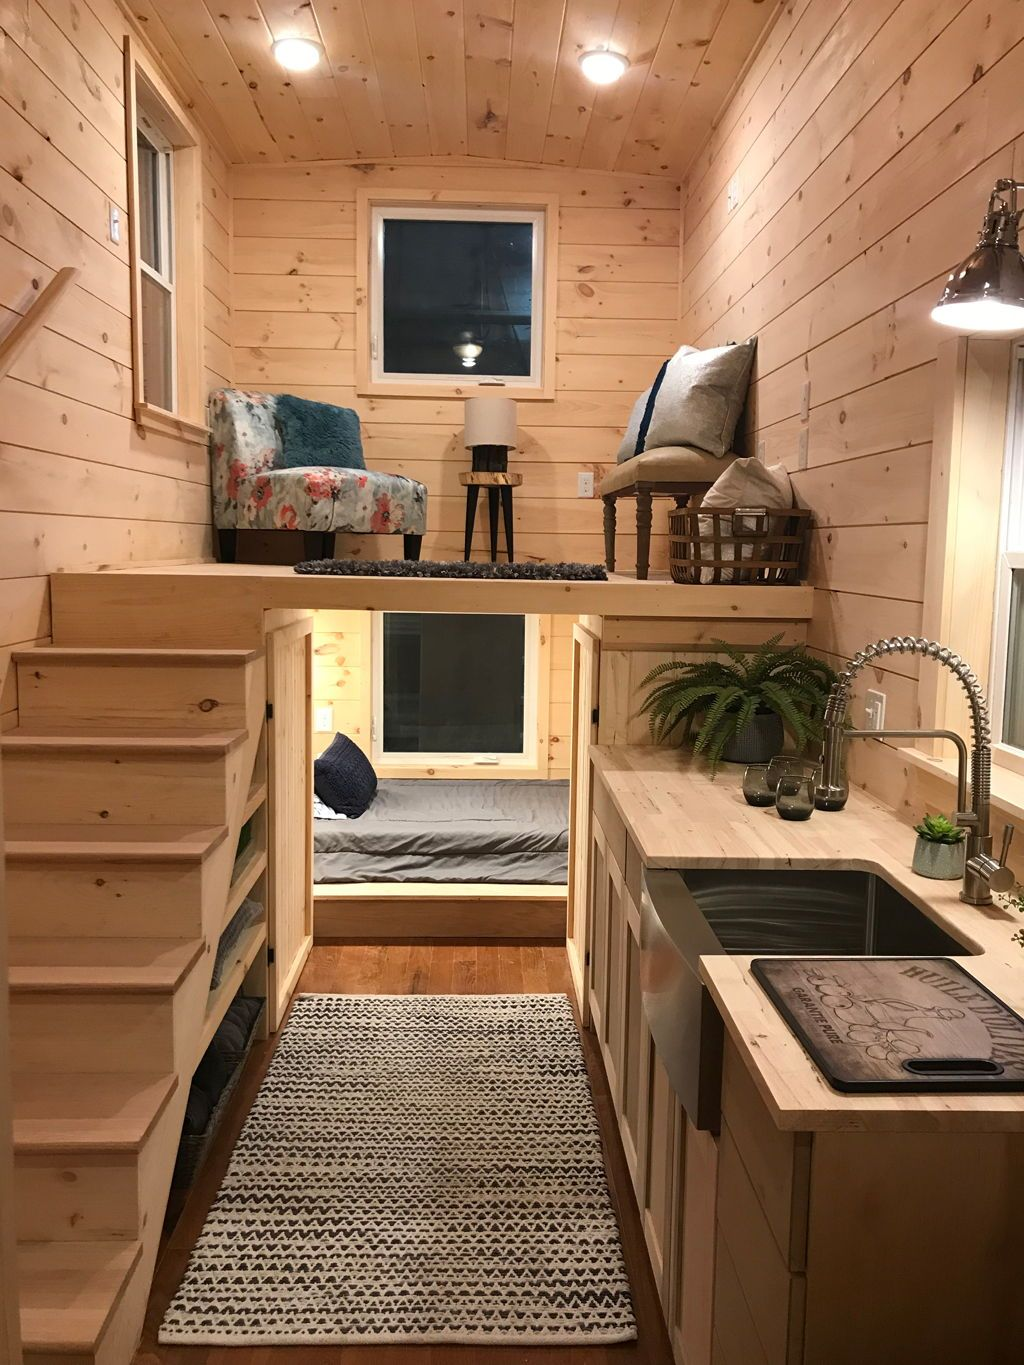 Sweet Dream By Incredible Tiny Homes Tiny Living Tiny House Inspiration Tiny House Living Tiny House Interior Design